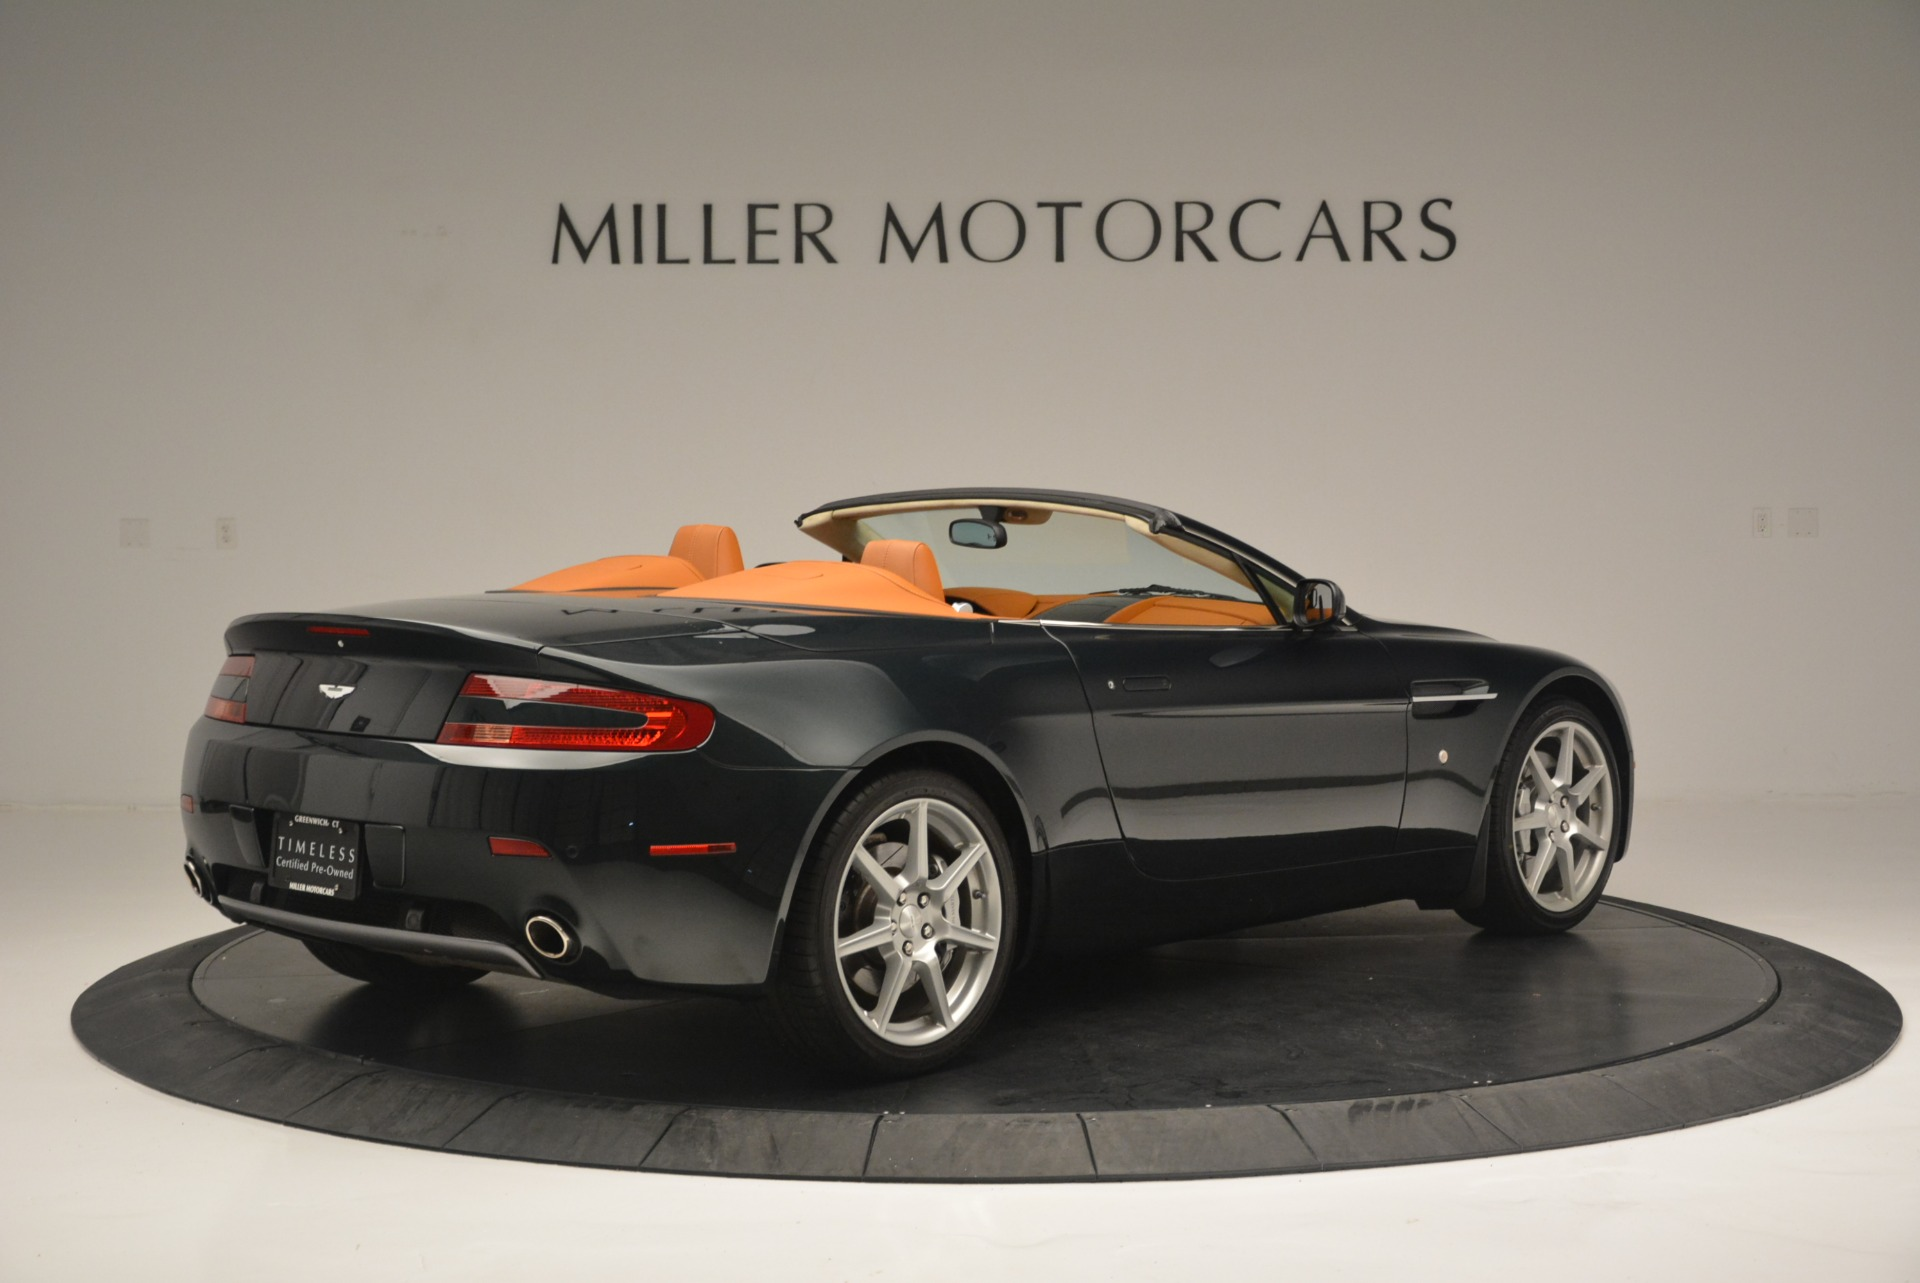 Used 2008 Aston Martin V8 Vantage Roadster For Sale In Westport, CT 2422_p8